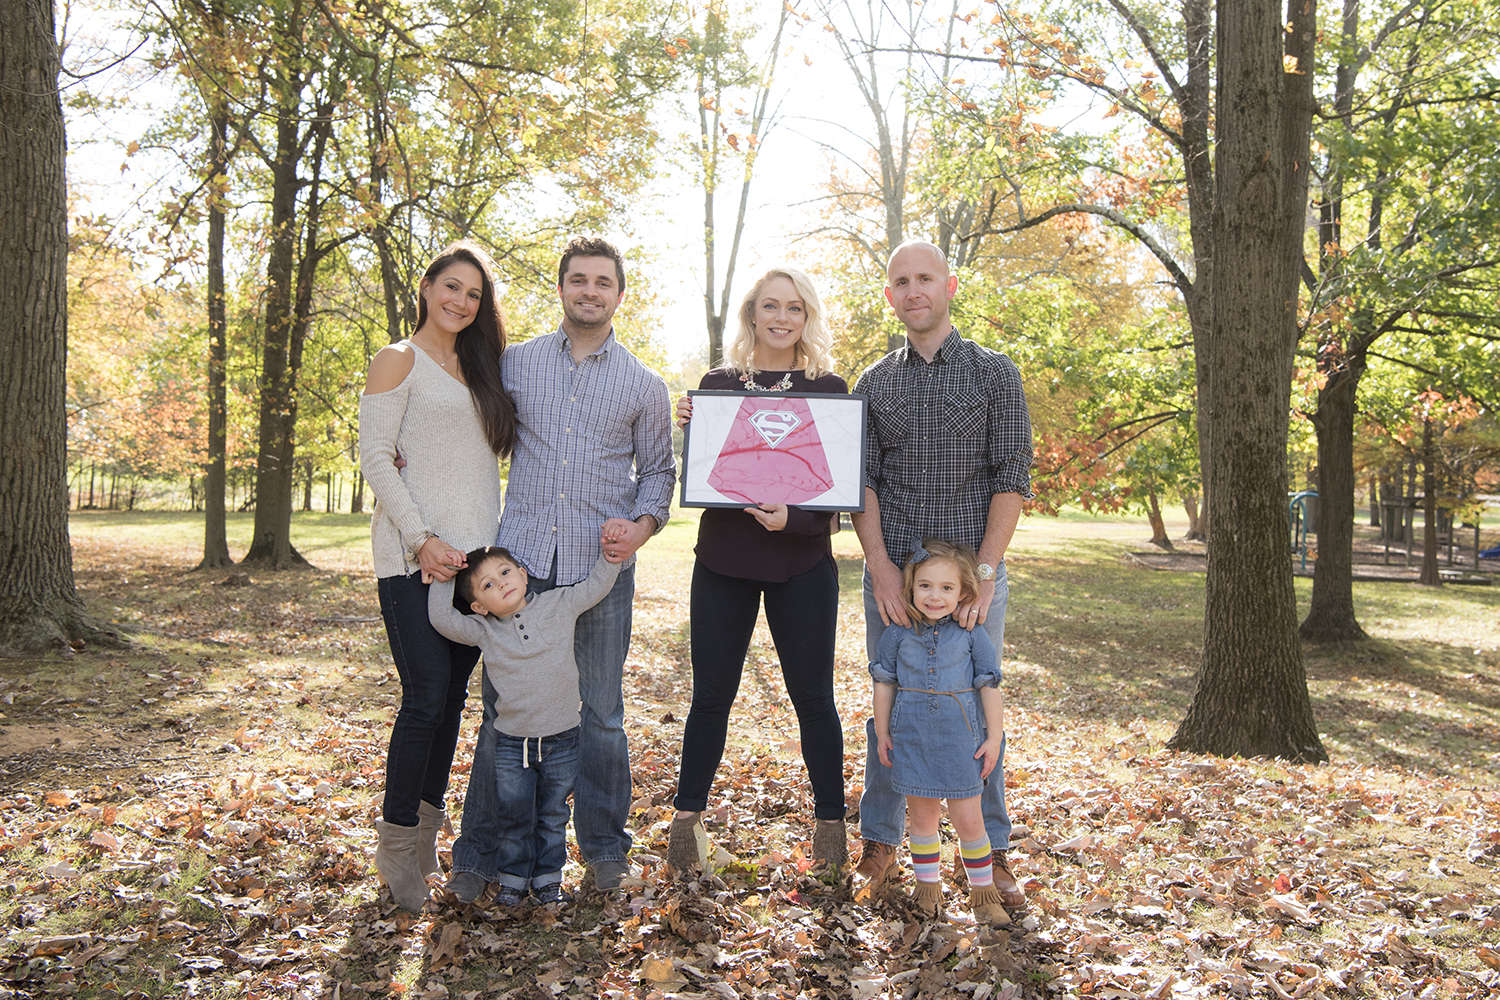 families together for fall family portraits at New Jersey park